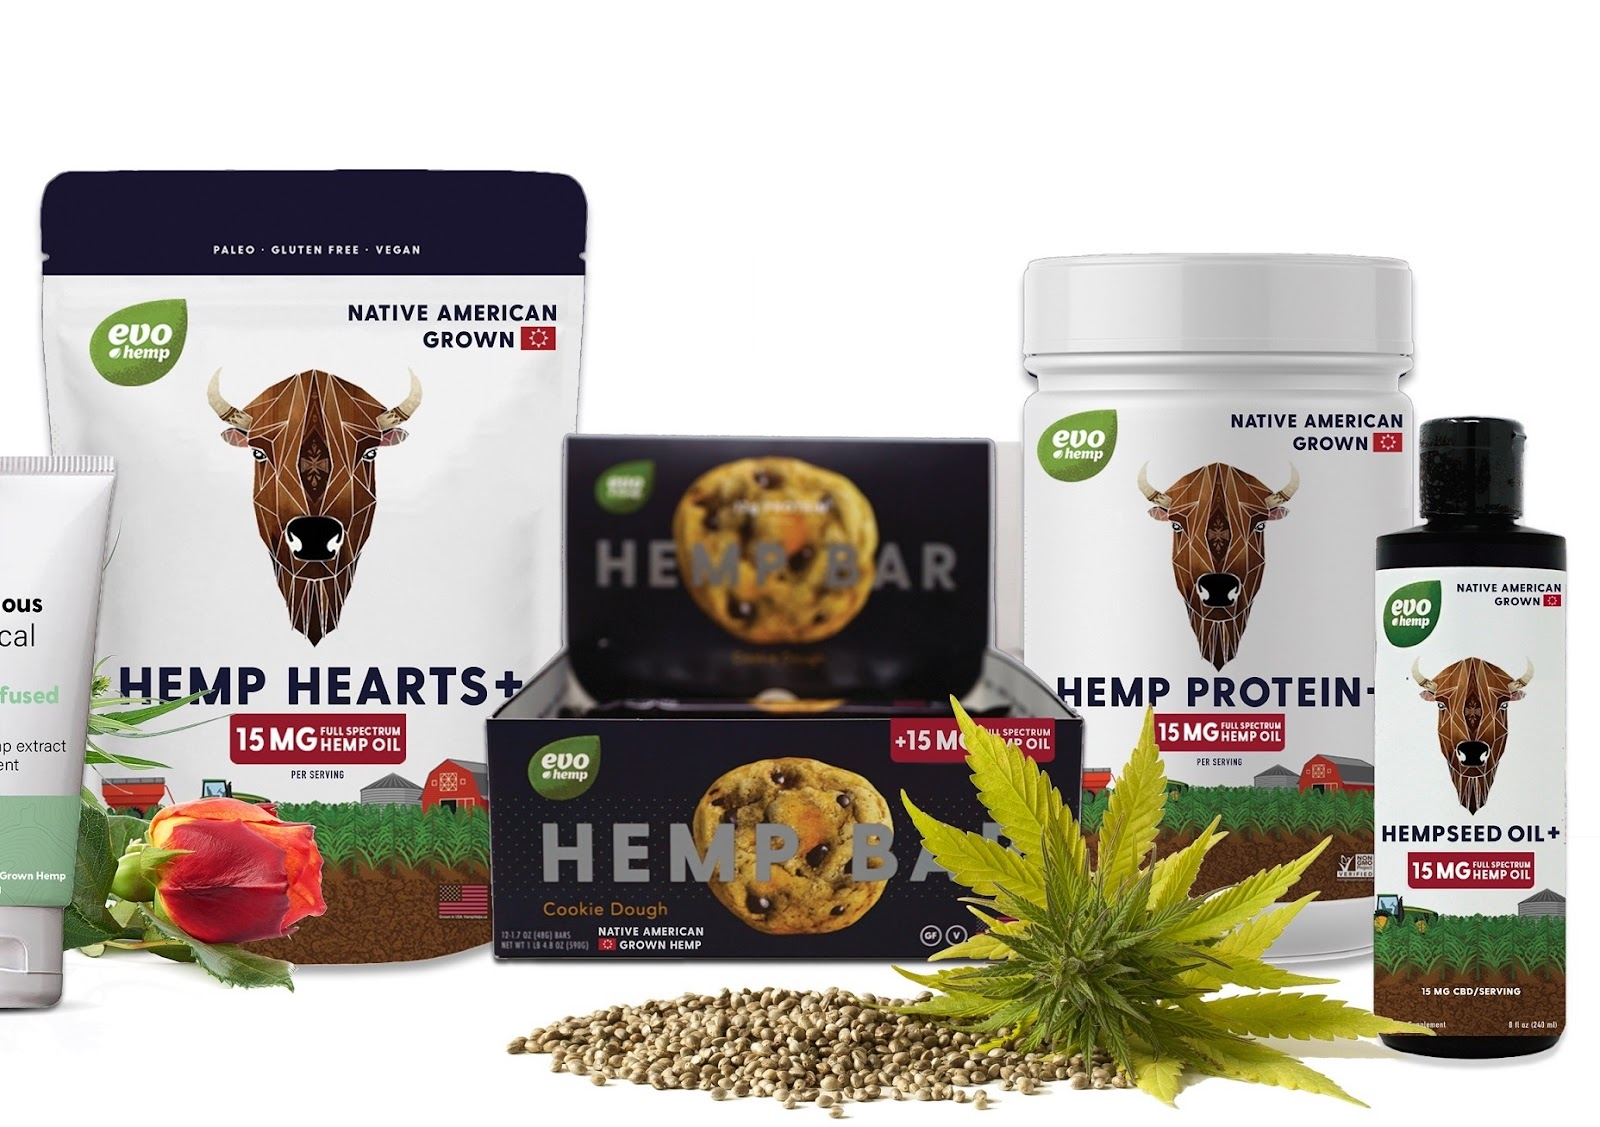 Evo Hemp Review Products